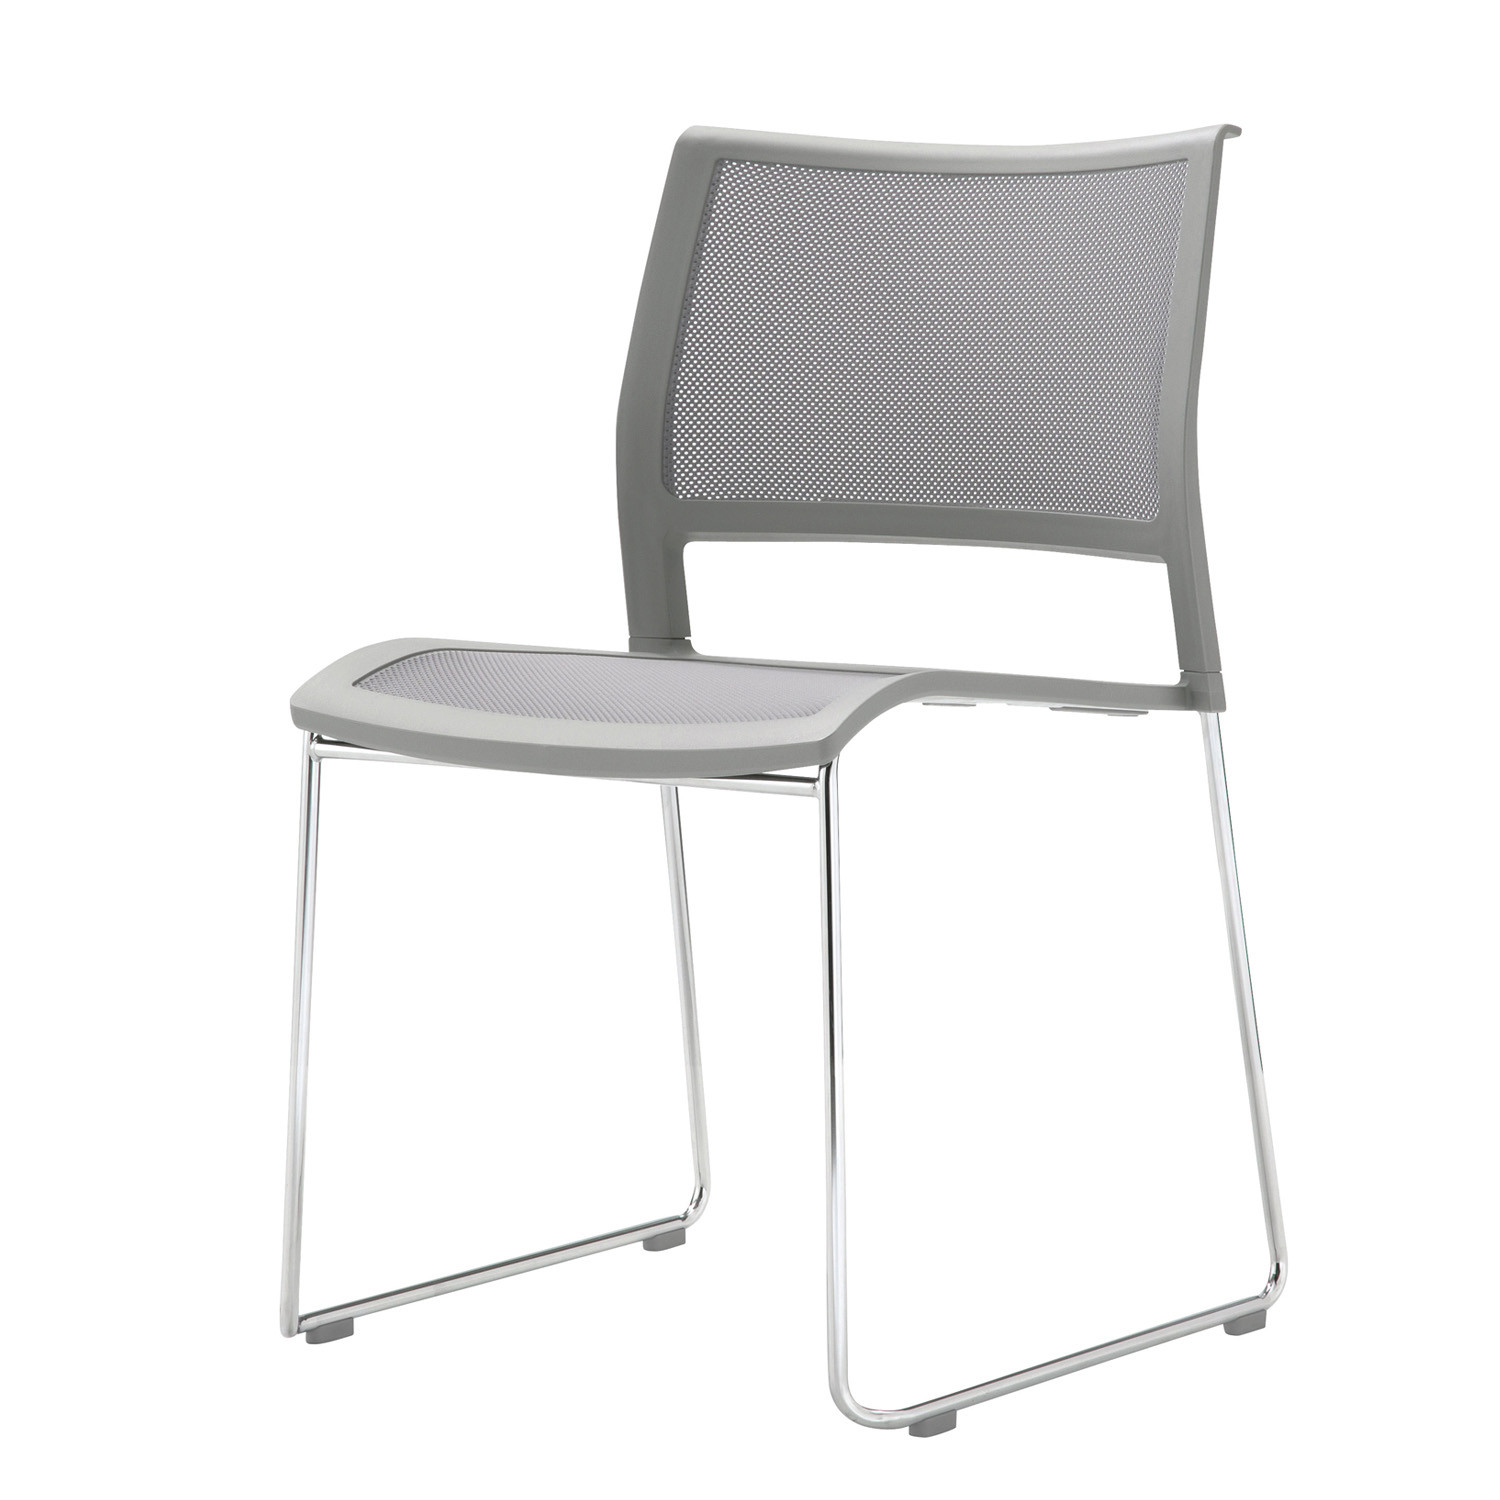 Opt4 White Cantilever Chair